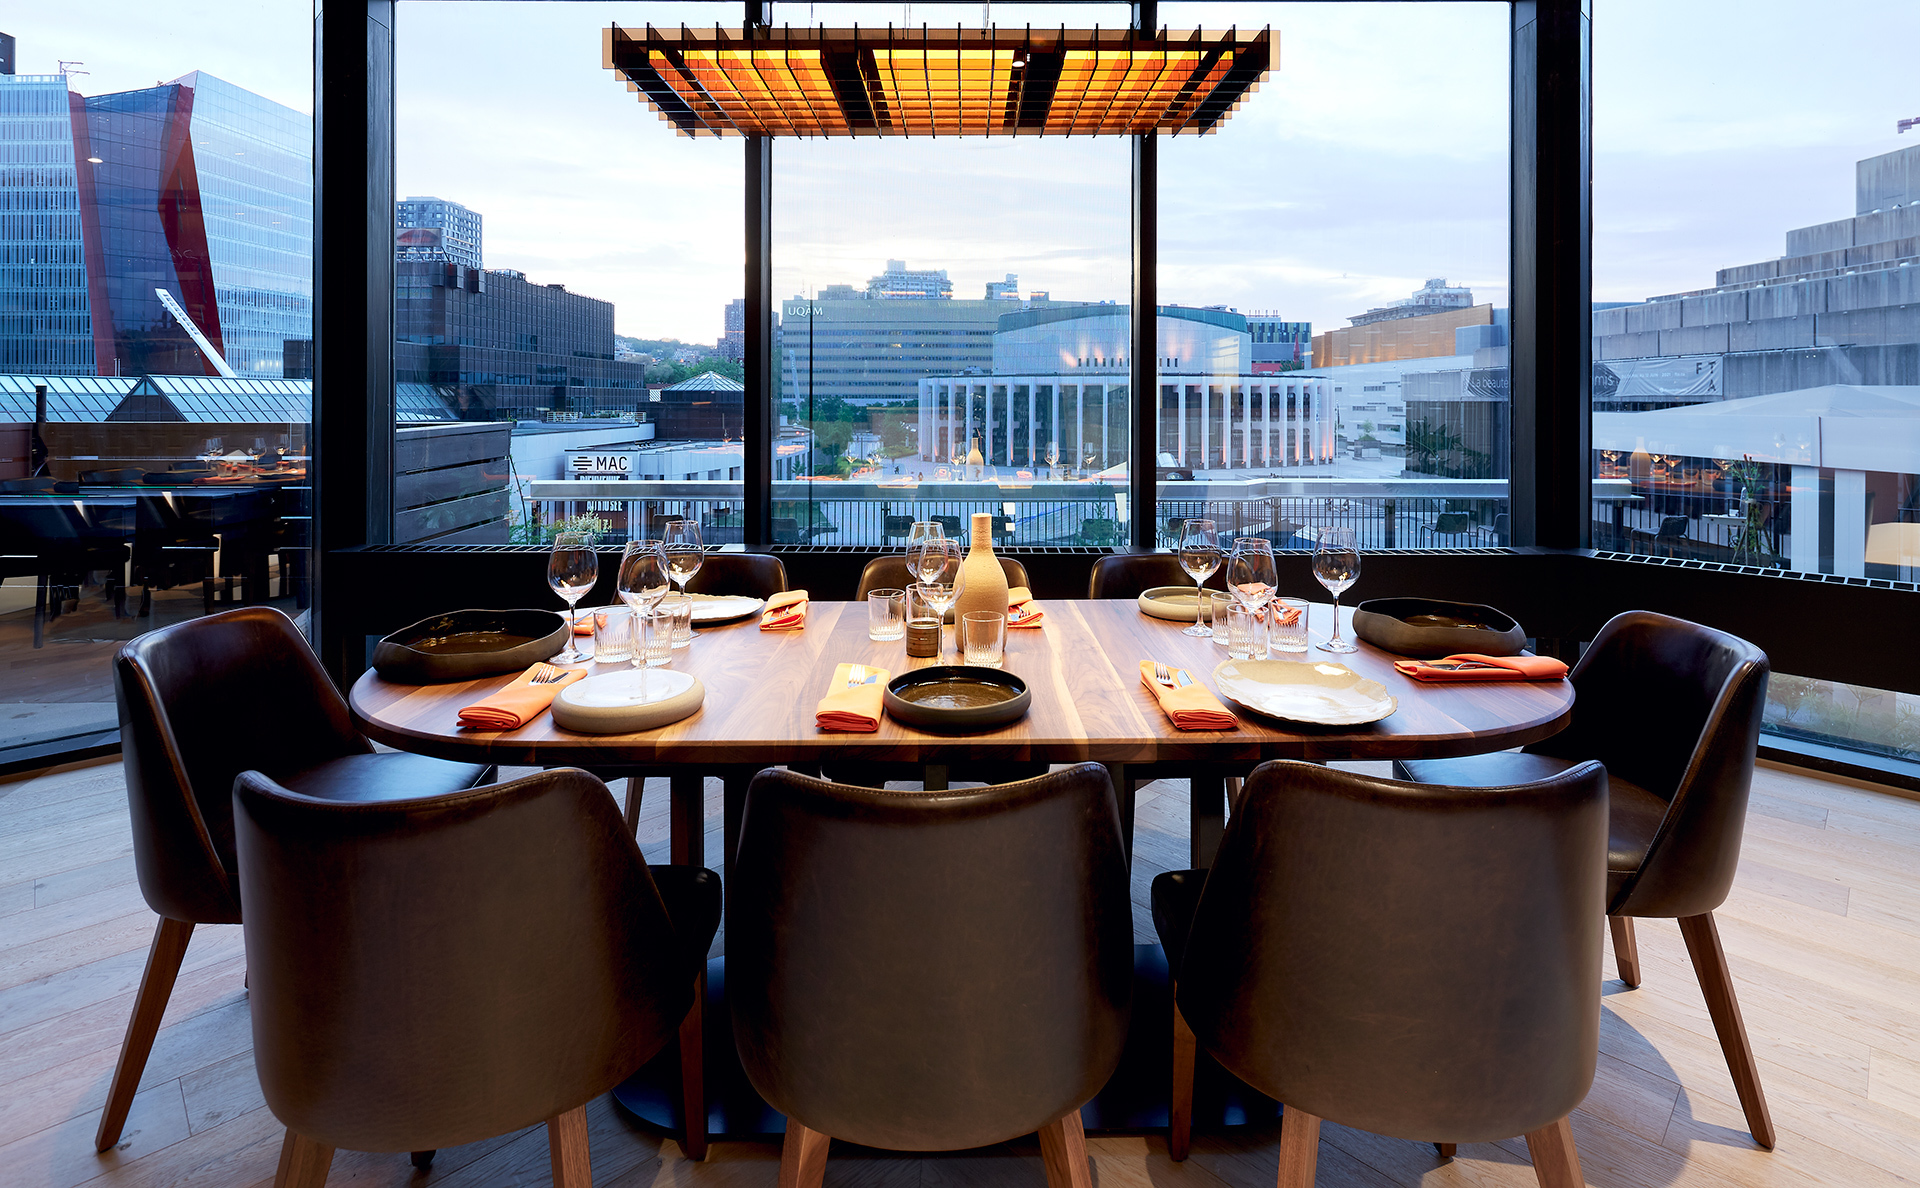 TABLE CHEF DOUBLE TREE HILTON HOTEL MONTREAL